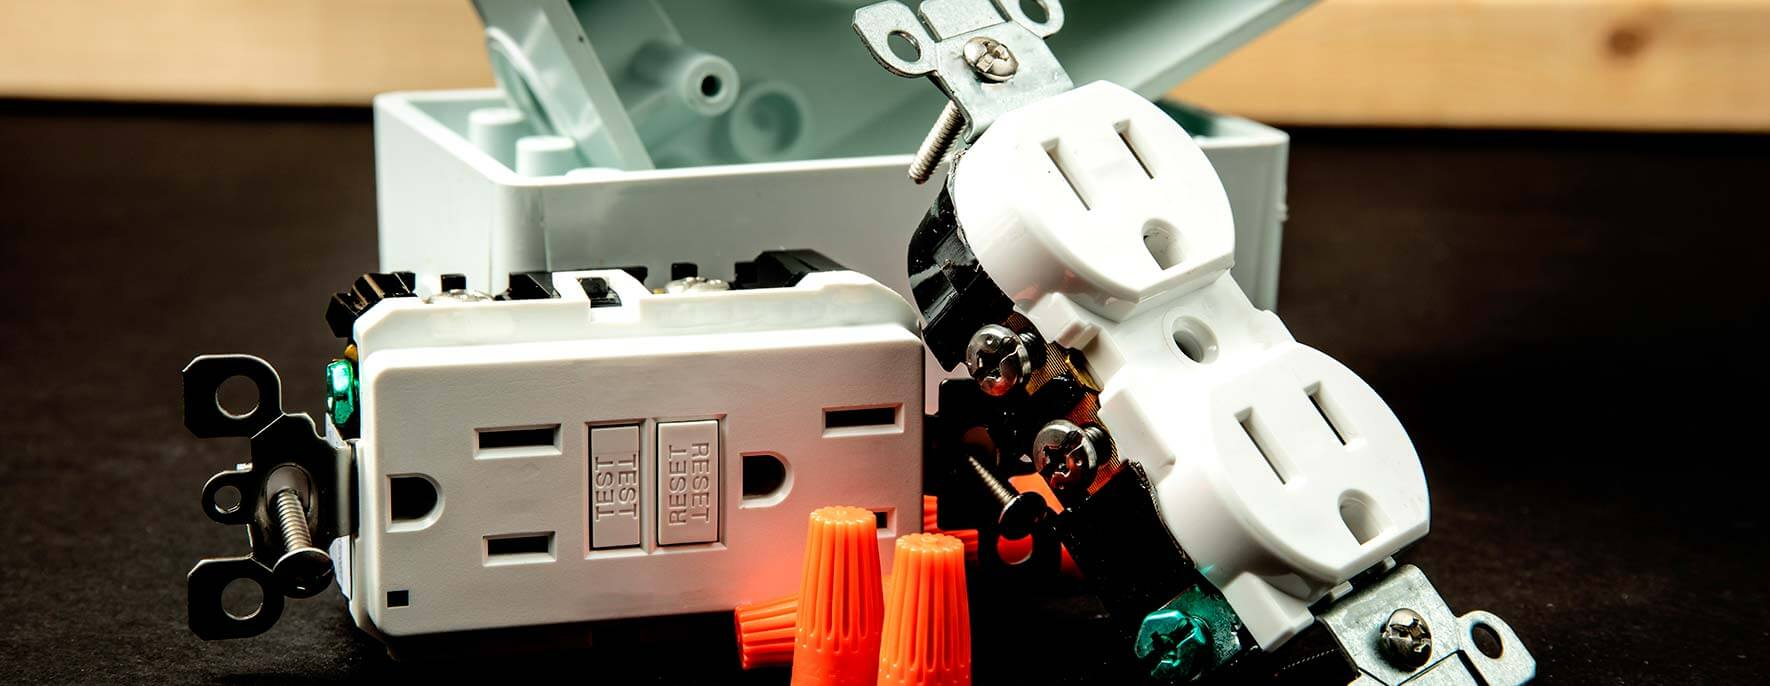 Outlet Repair Services